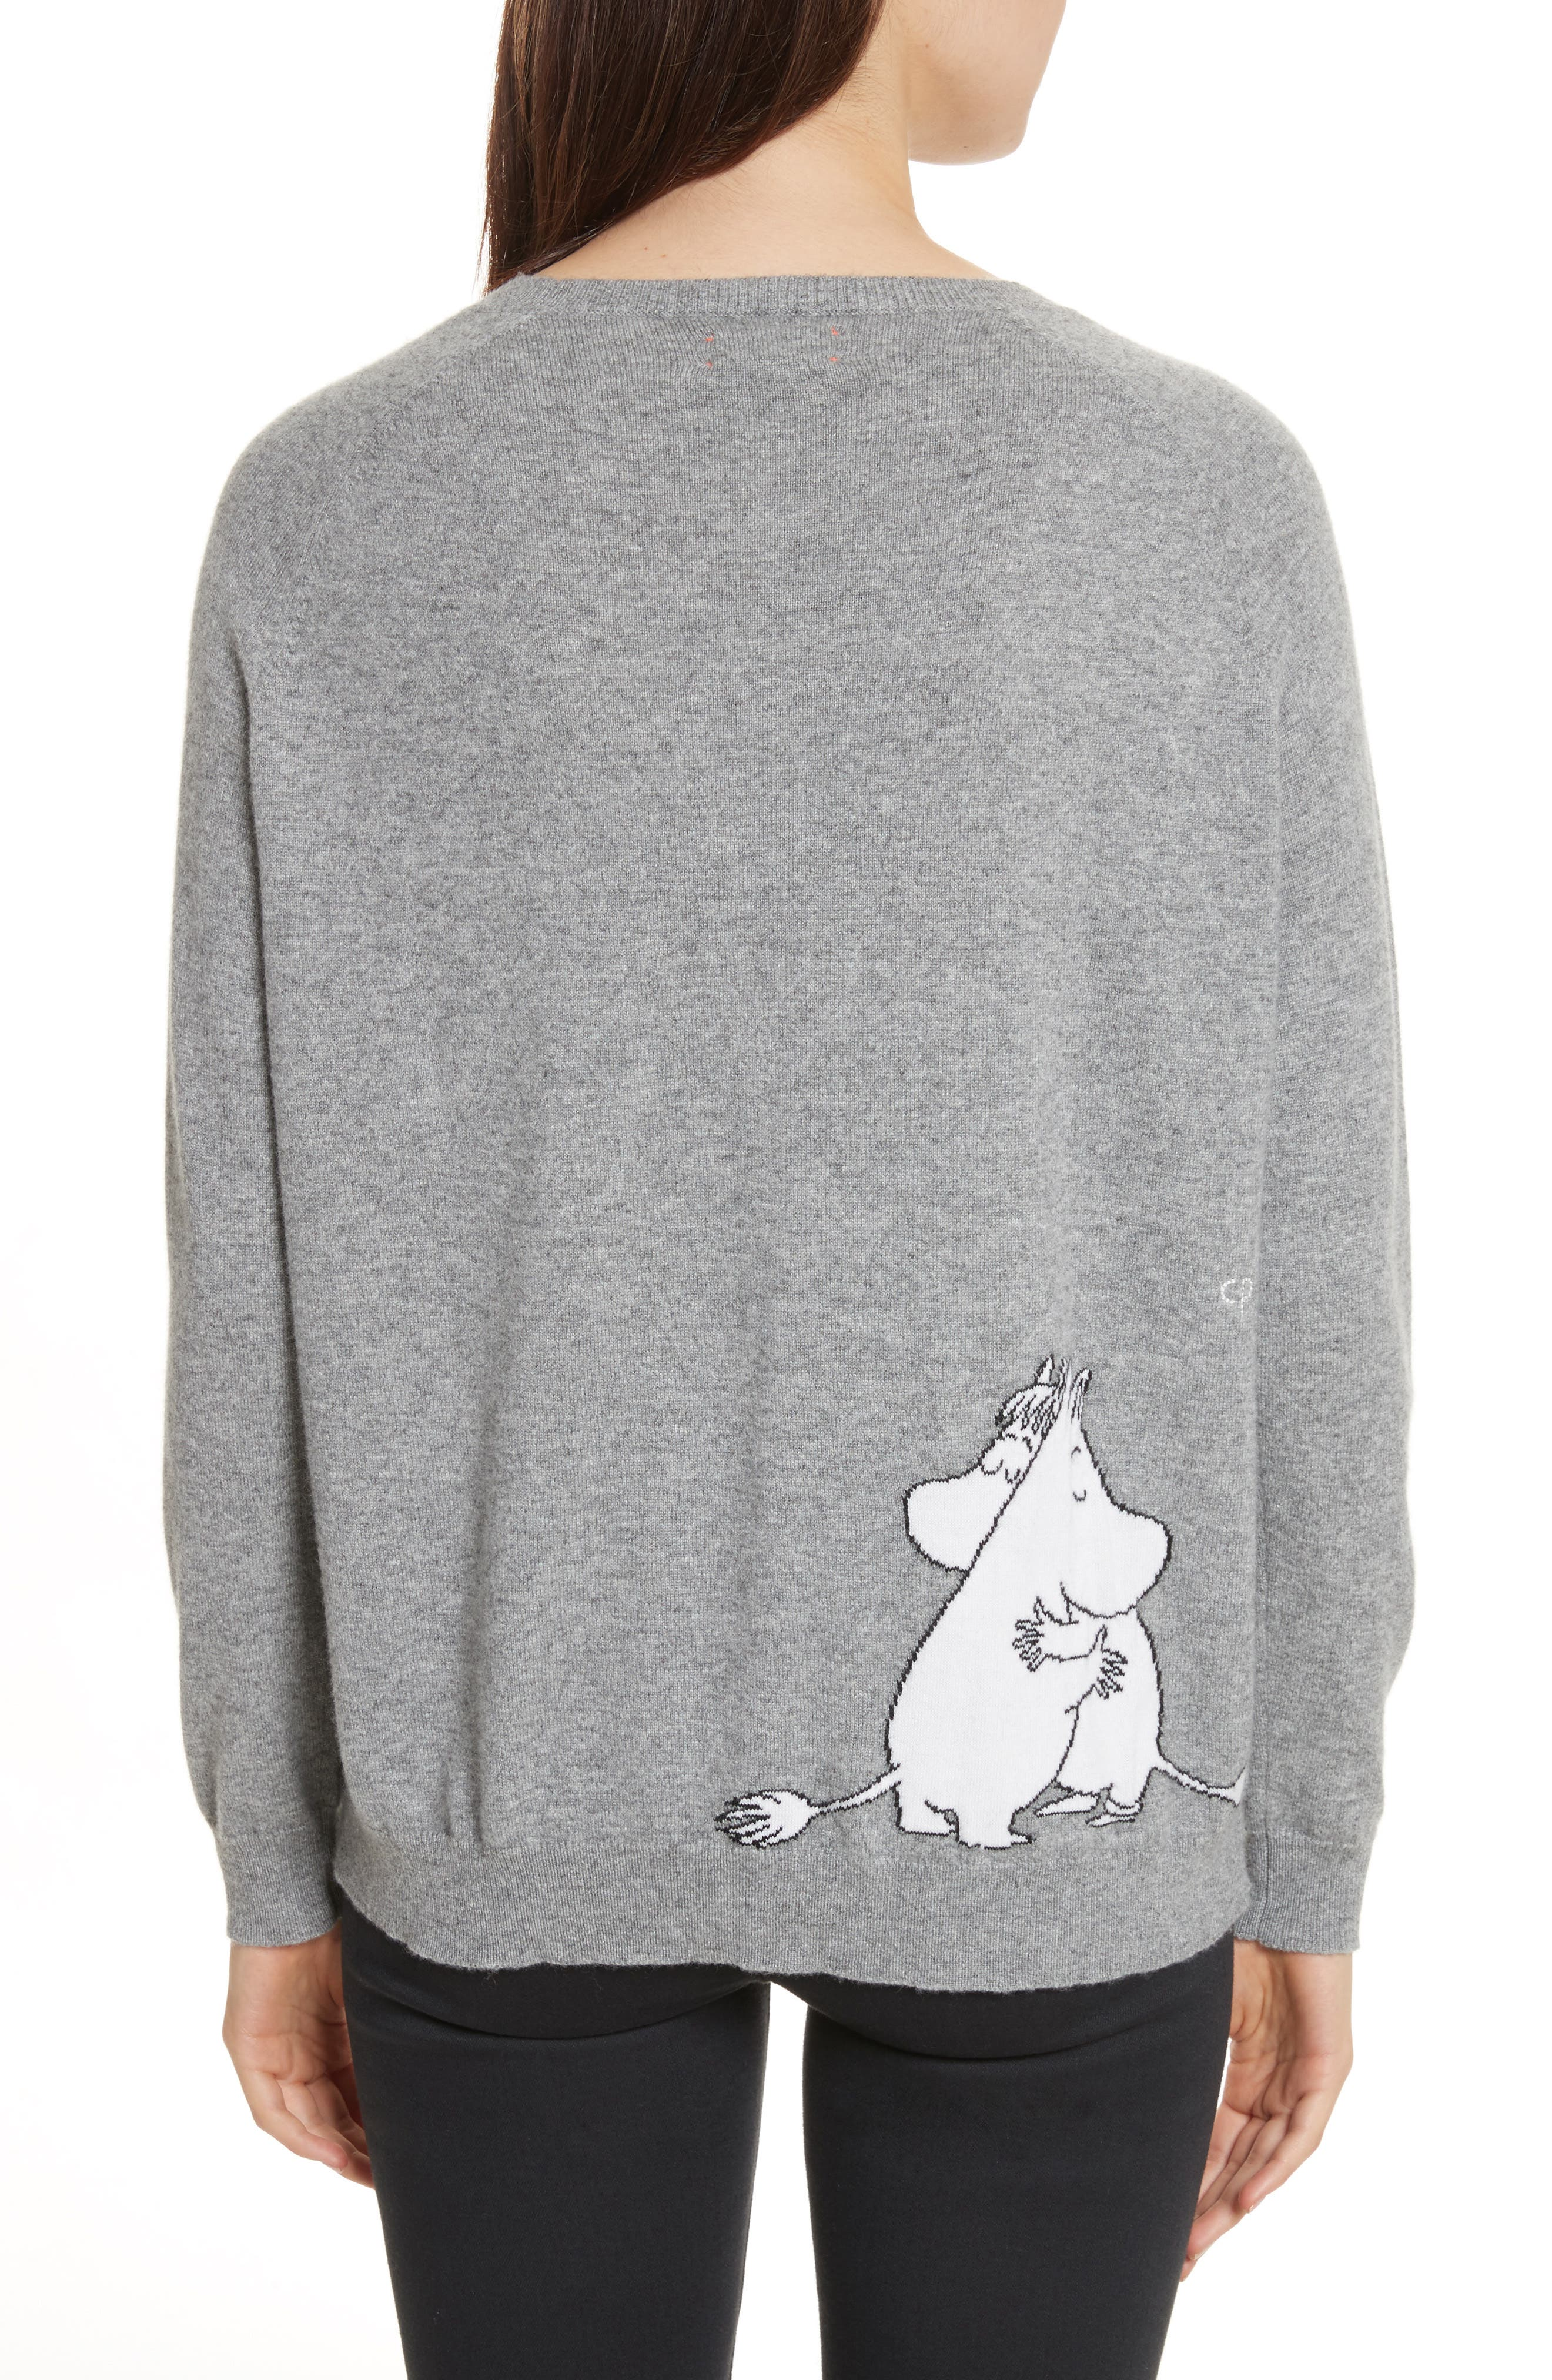 CHINTI & PARKER Just Imagine Moomin Cashmere Sweater,                             Alternate thumbnail 2, color,                             020